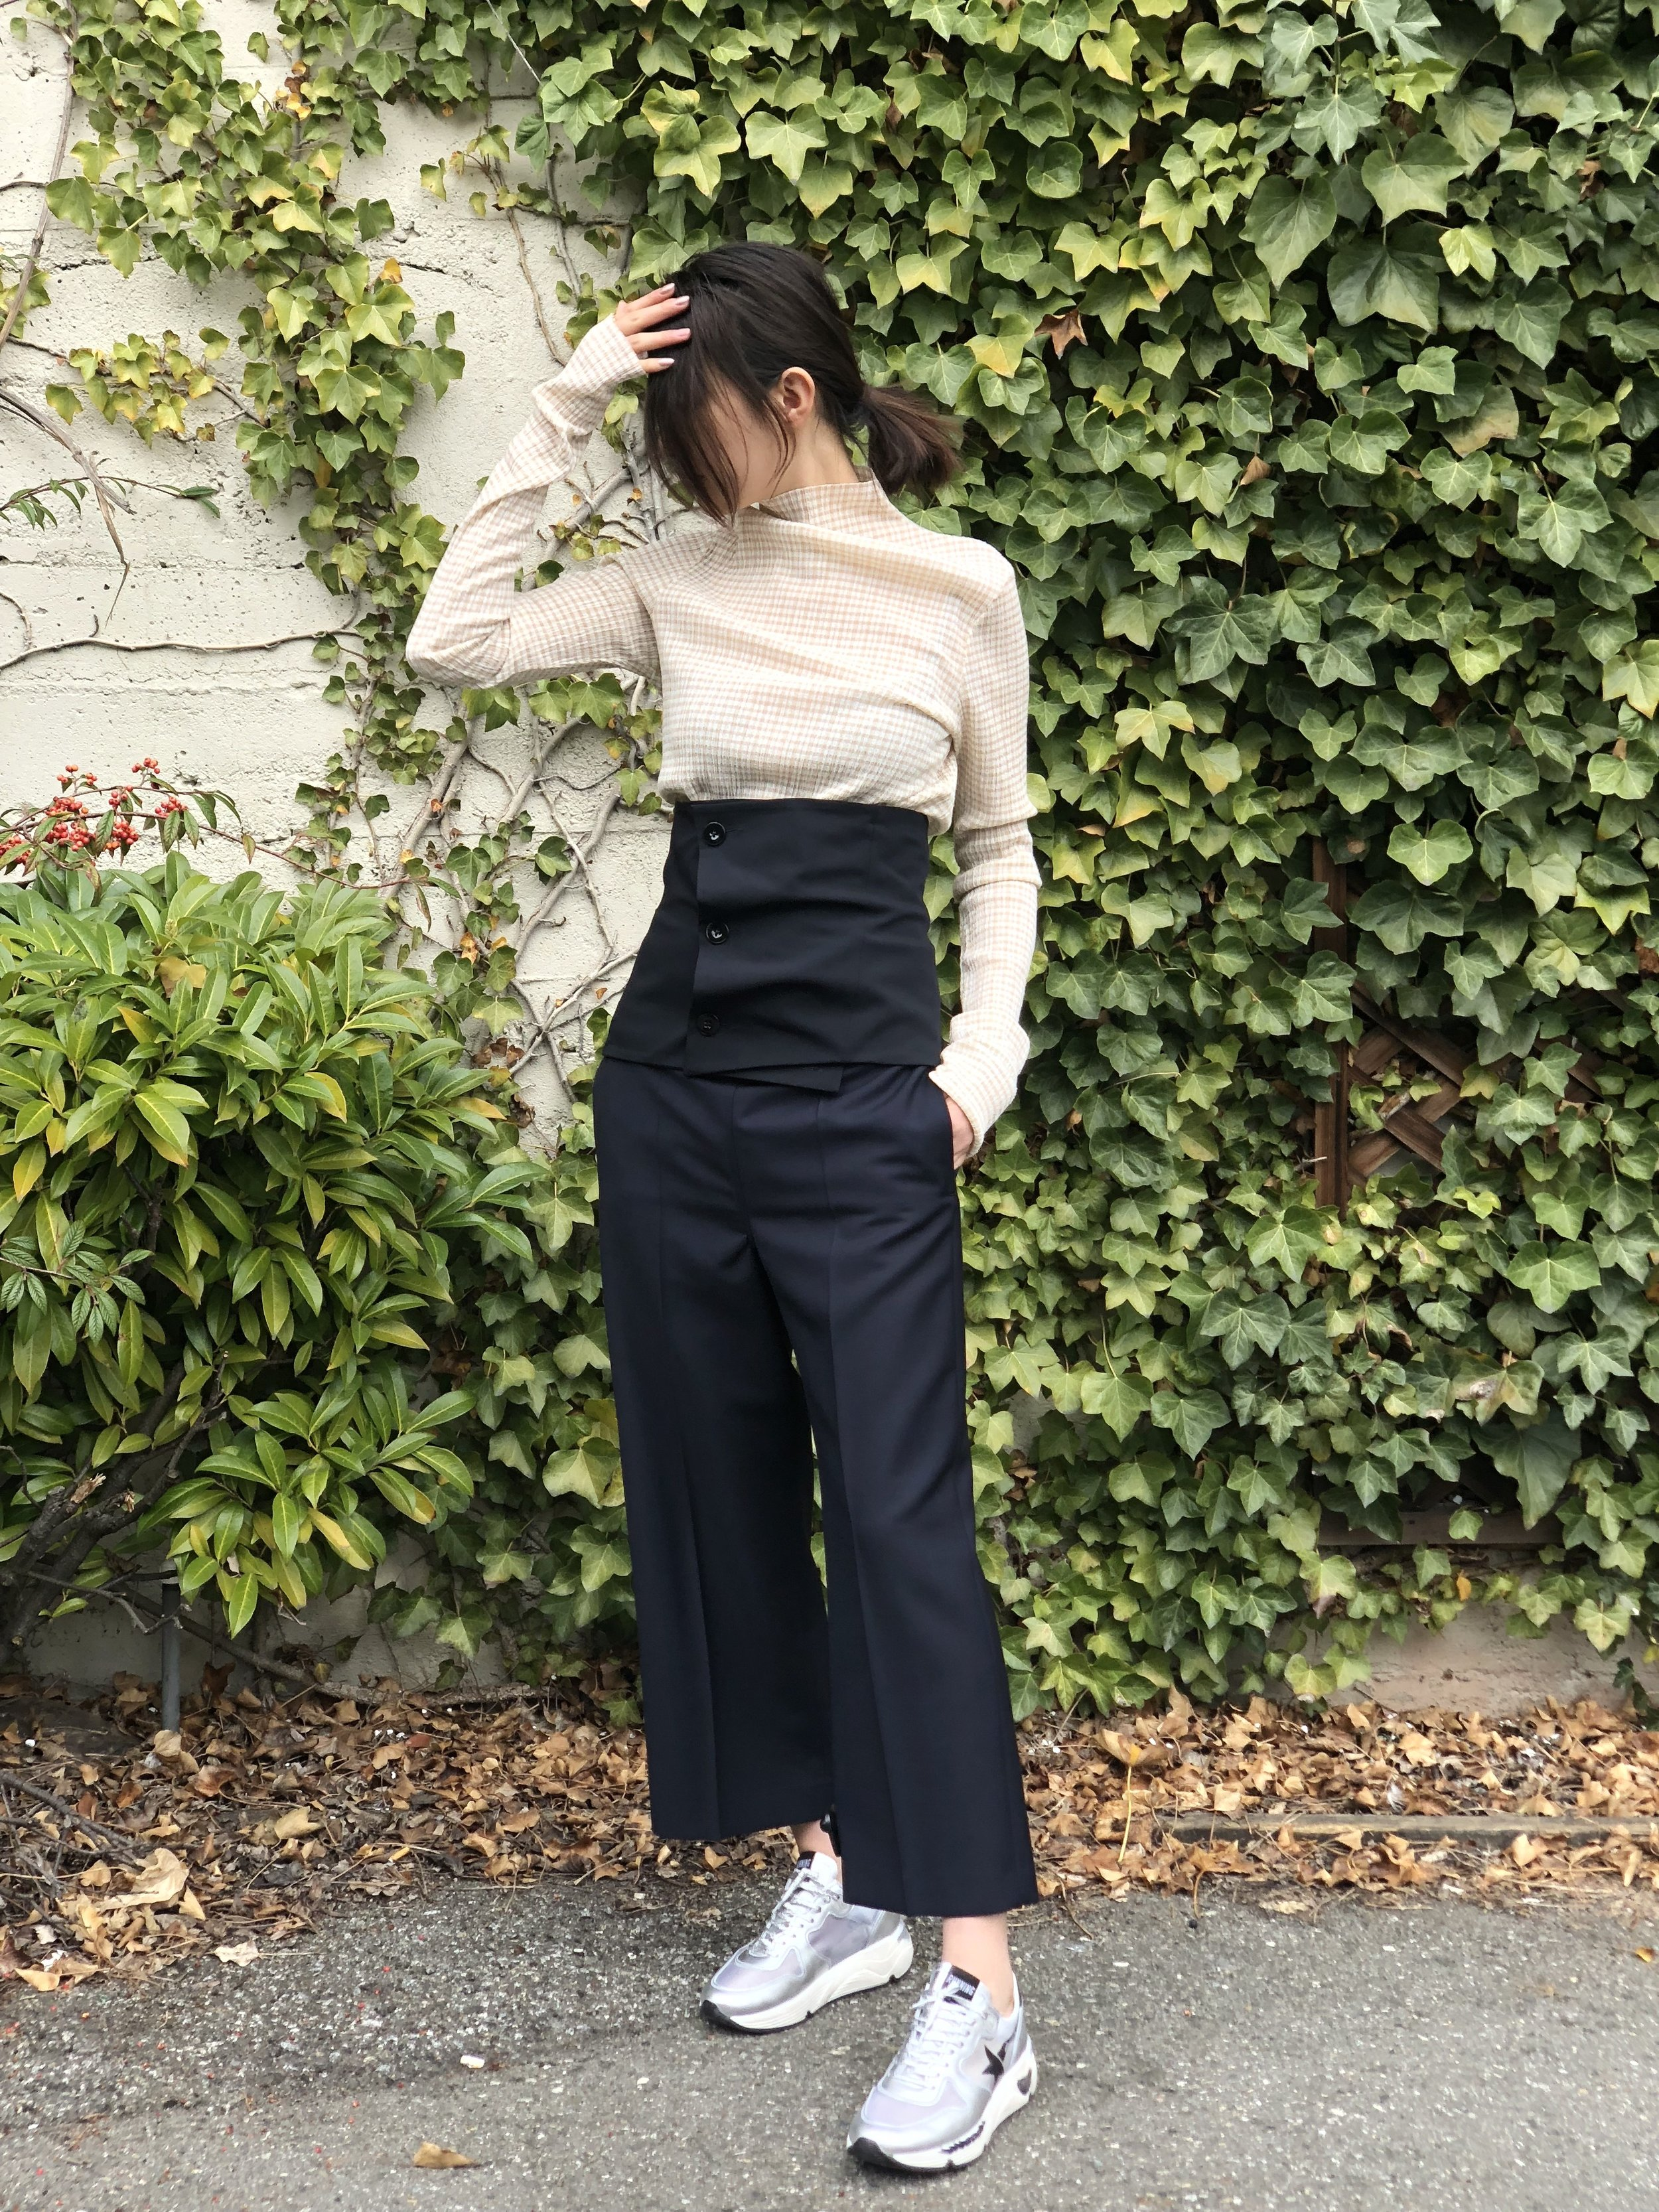 Outfit #1 is our new fave Jil Sander - Top, corset and trousers.